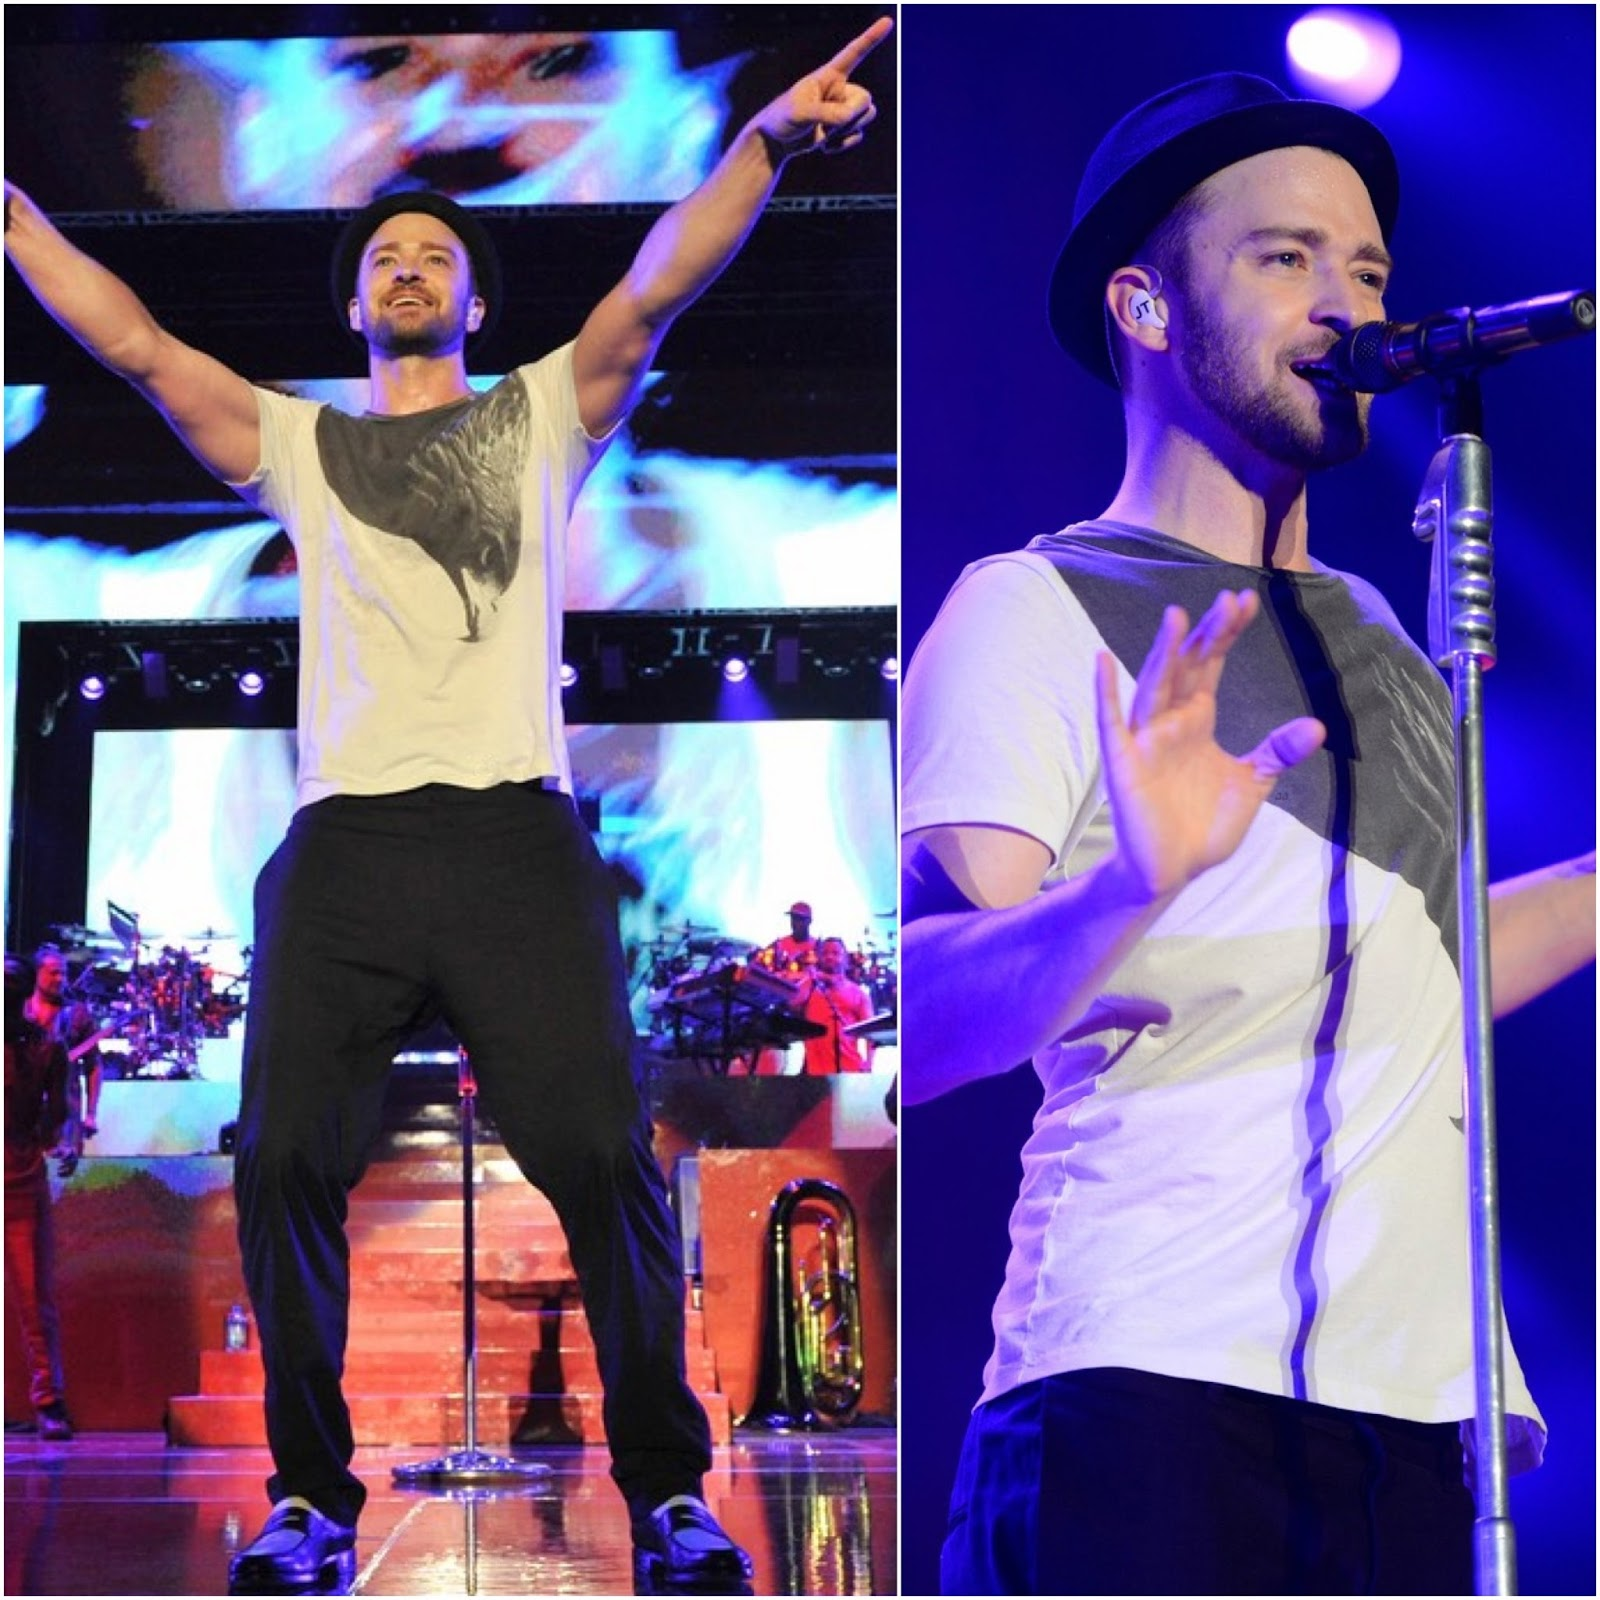 00O00 Menswear Blog: Justin Timberlake in All Saints Swoop Band t-shirt - 'Legends of the Summer Tour', Toronto